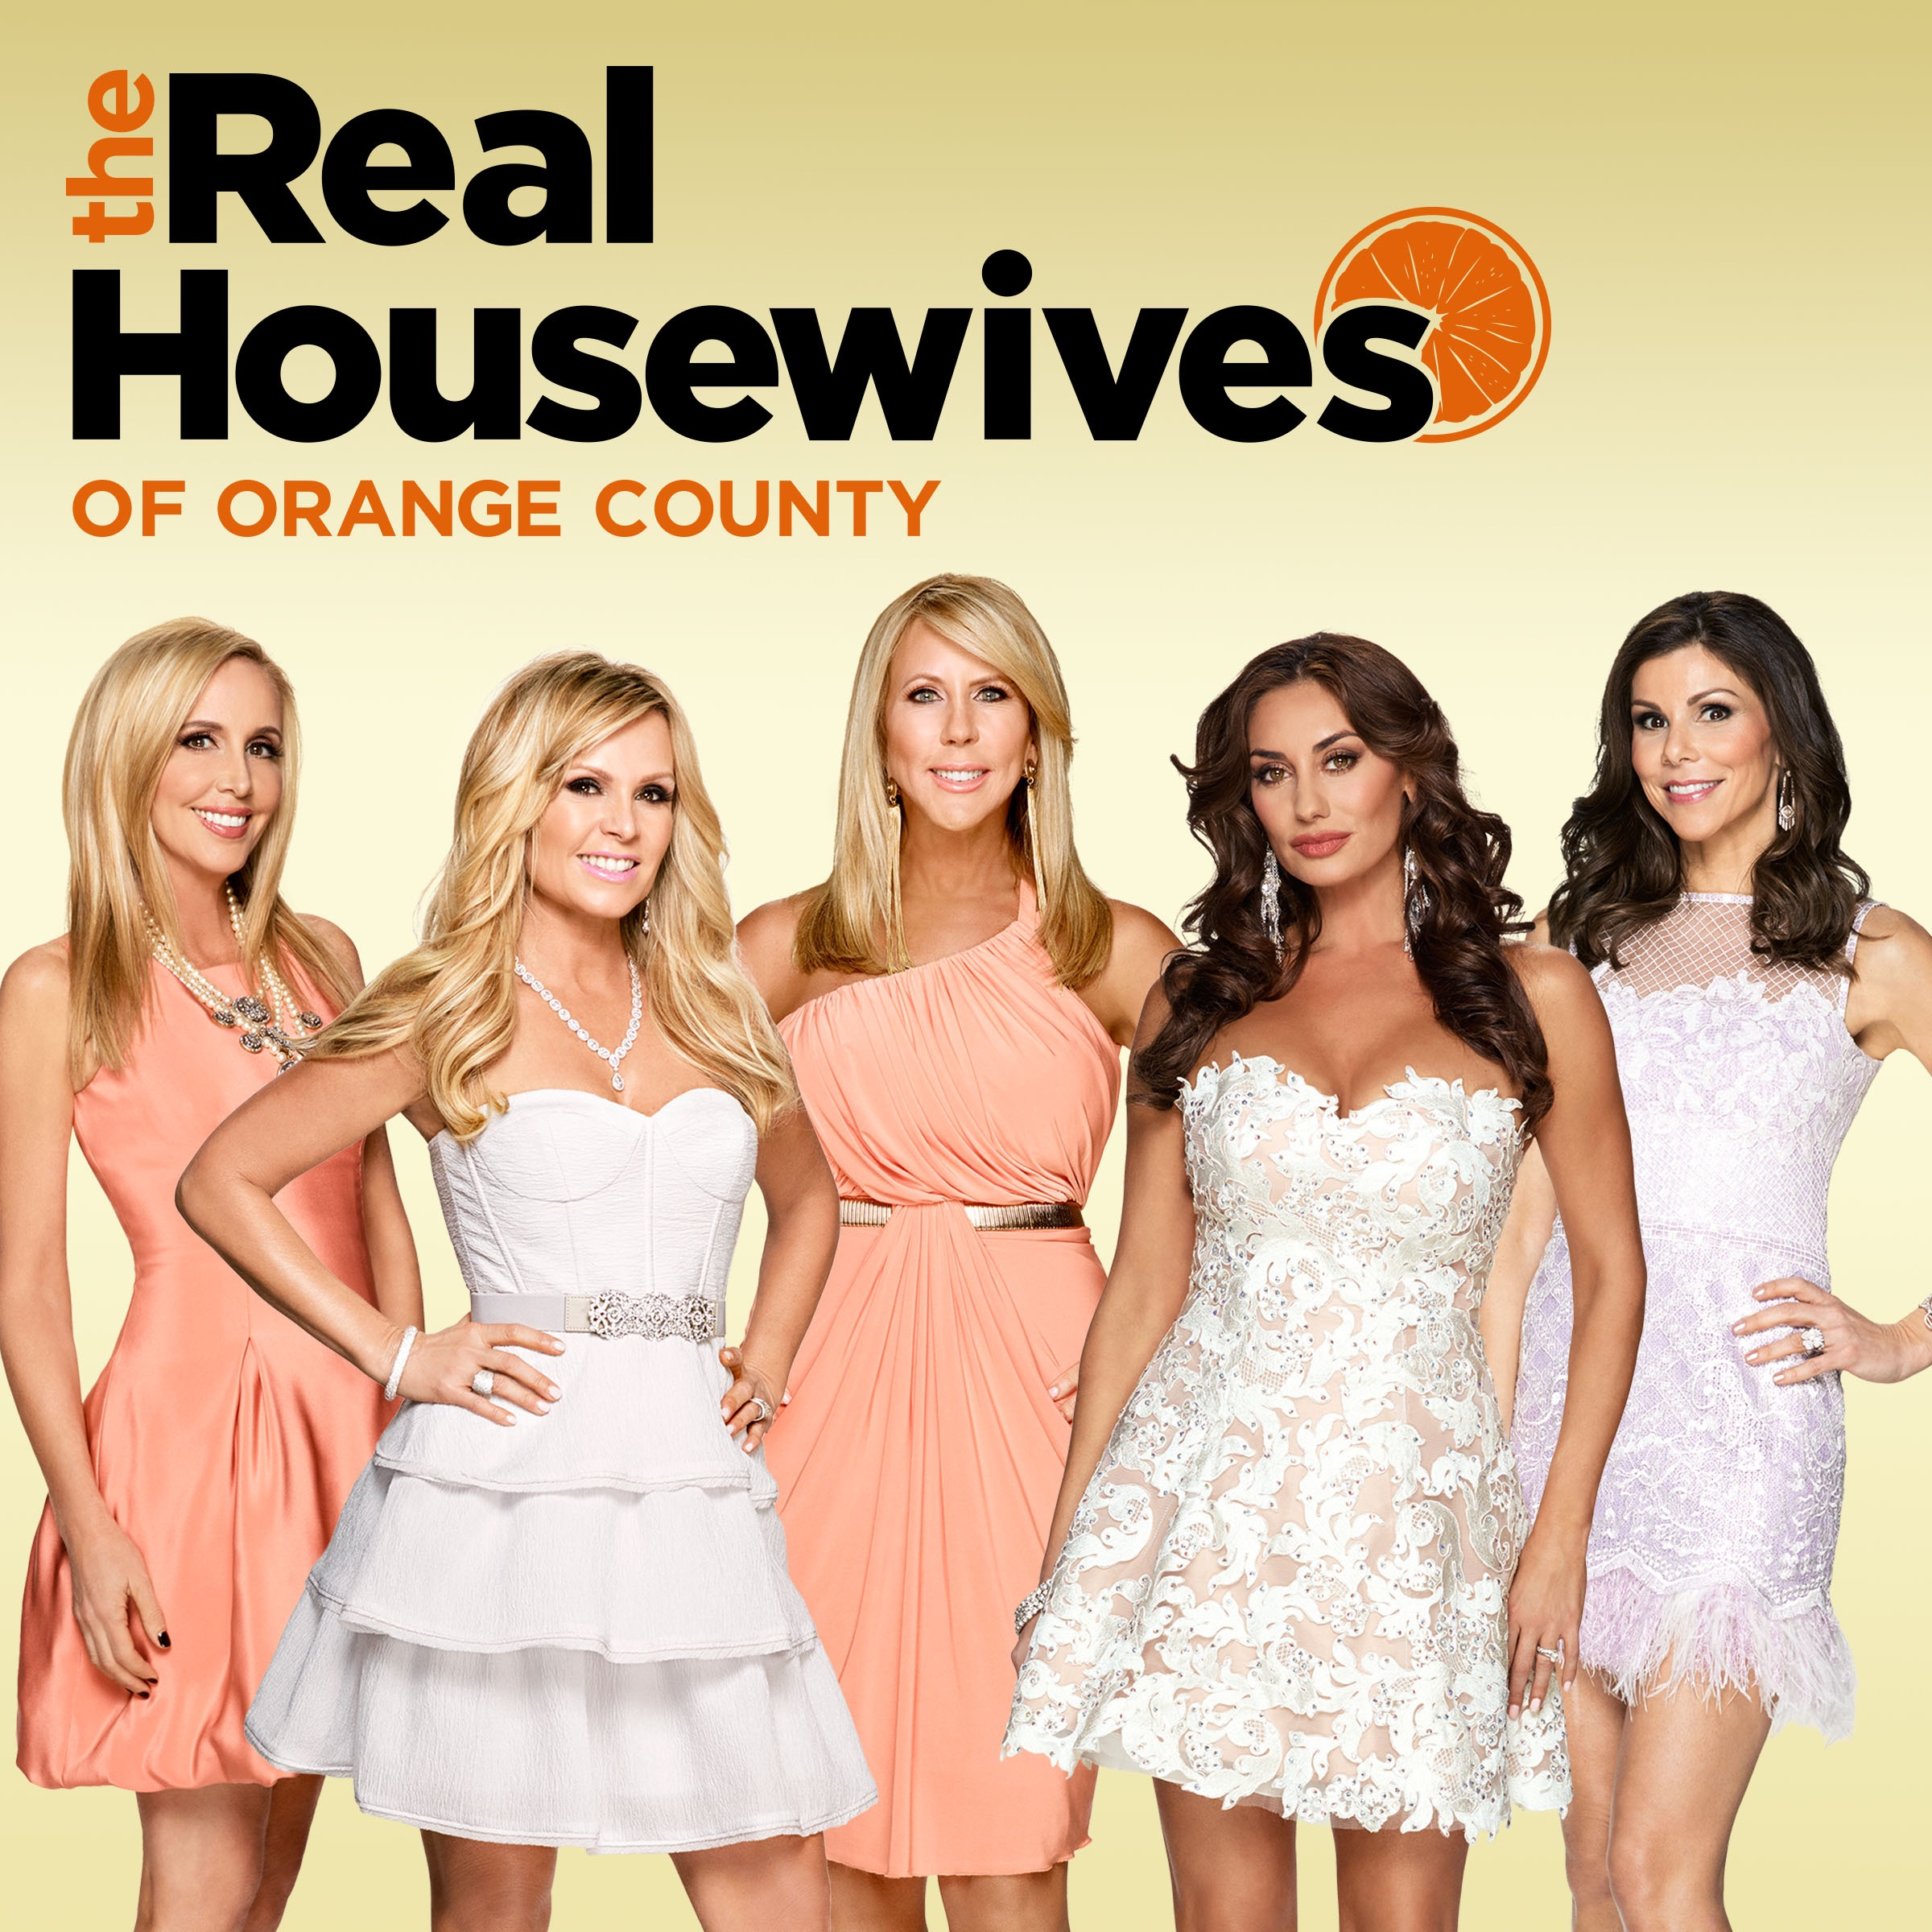 The Real Housewives of Orange County - Watch episodes ...